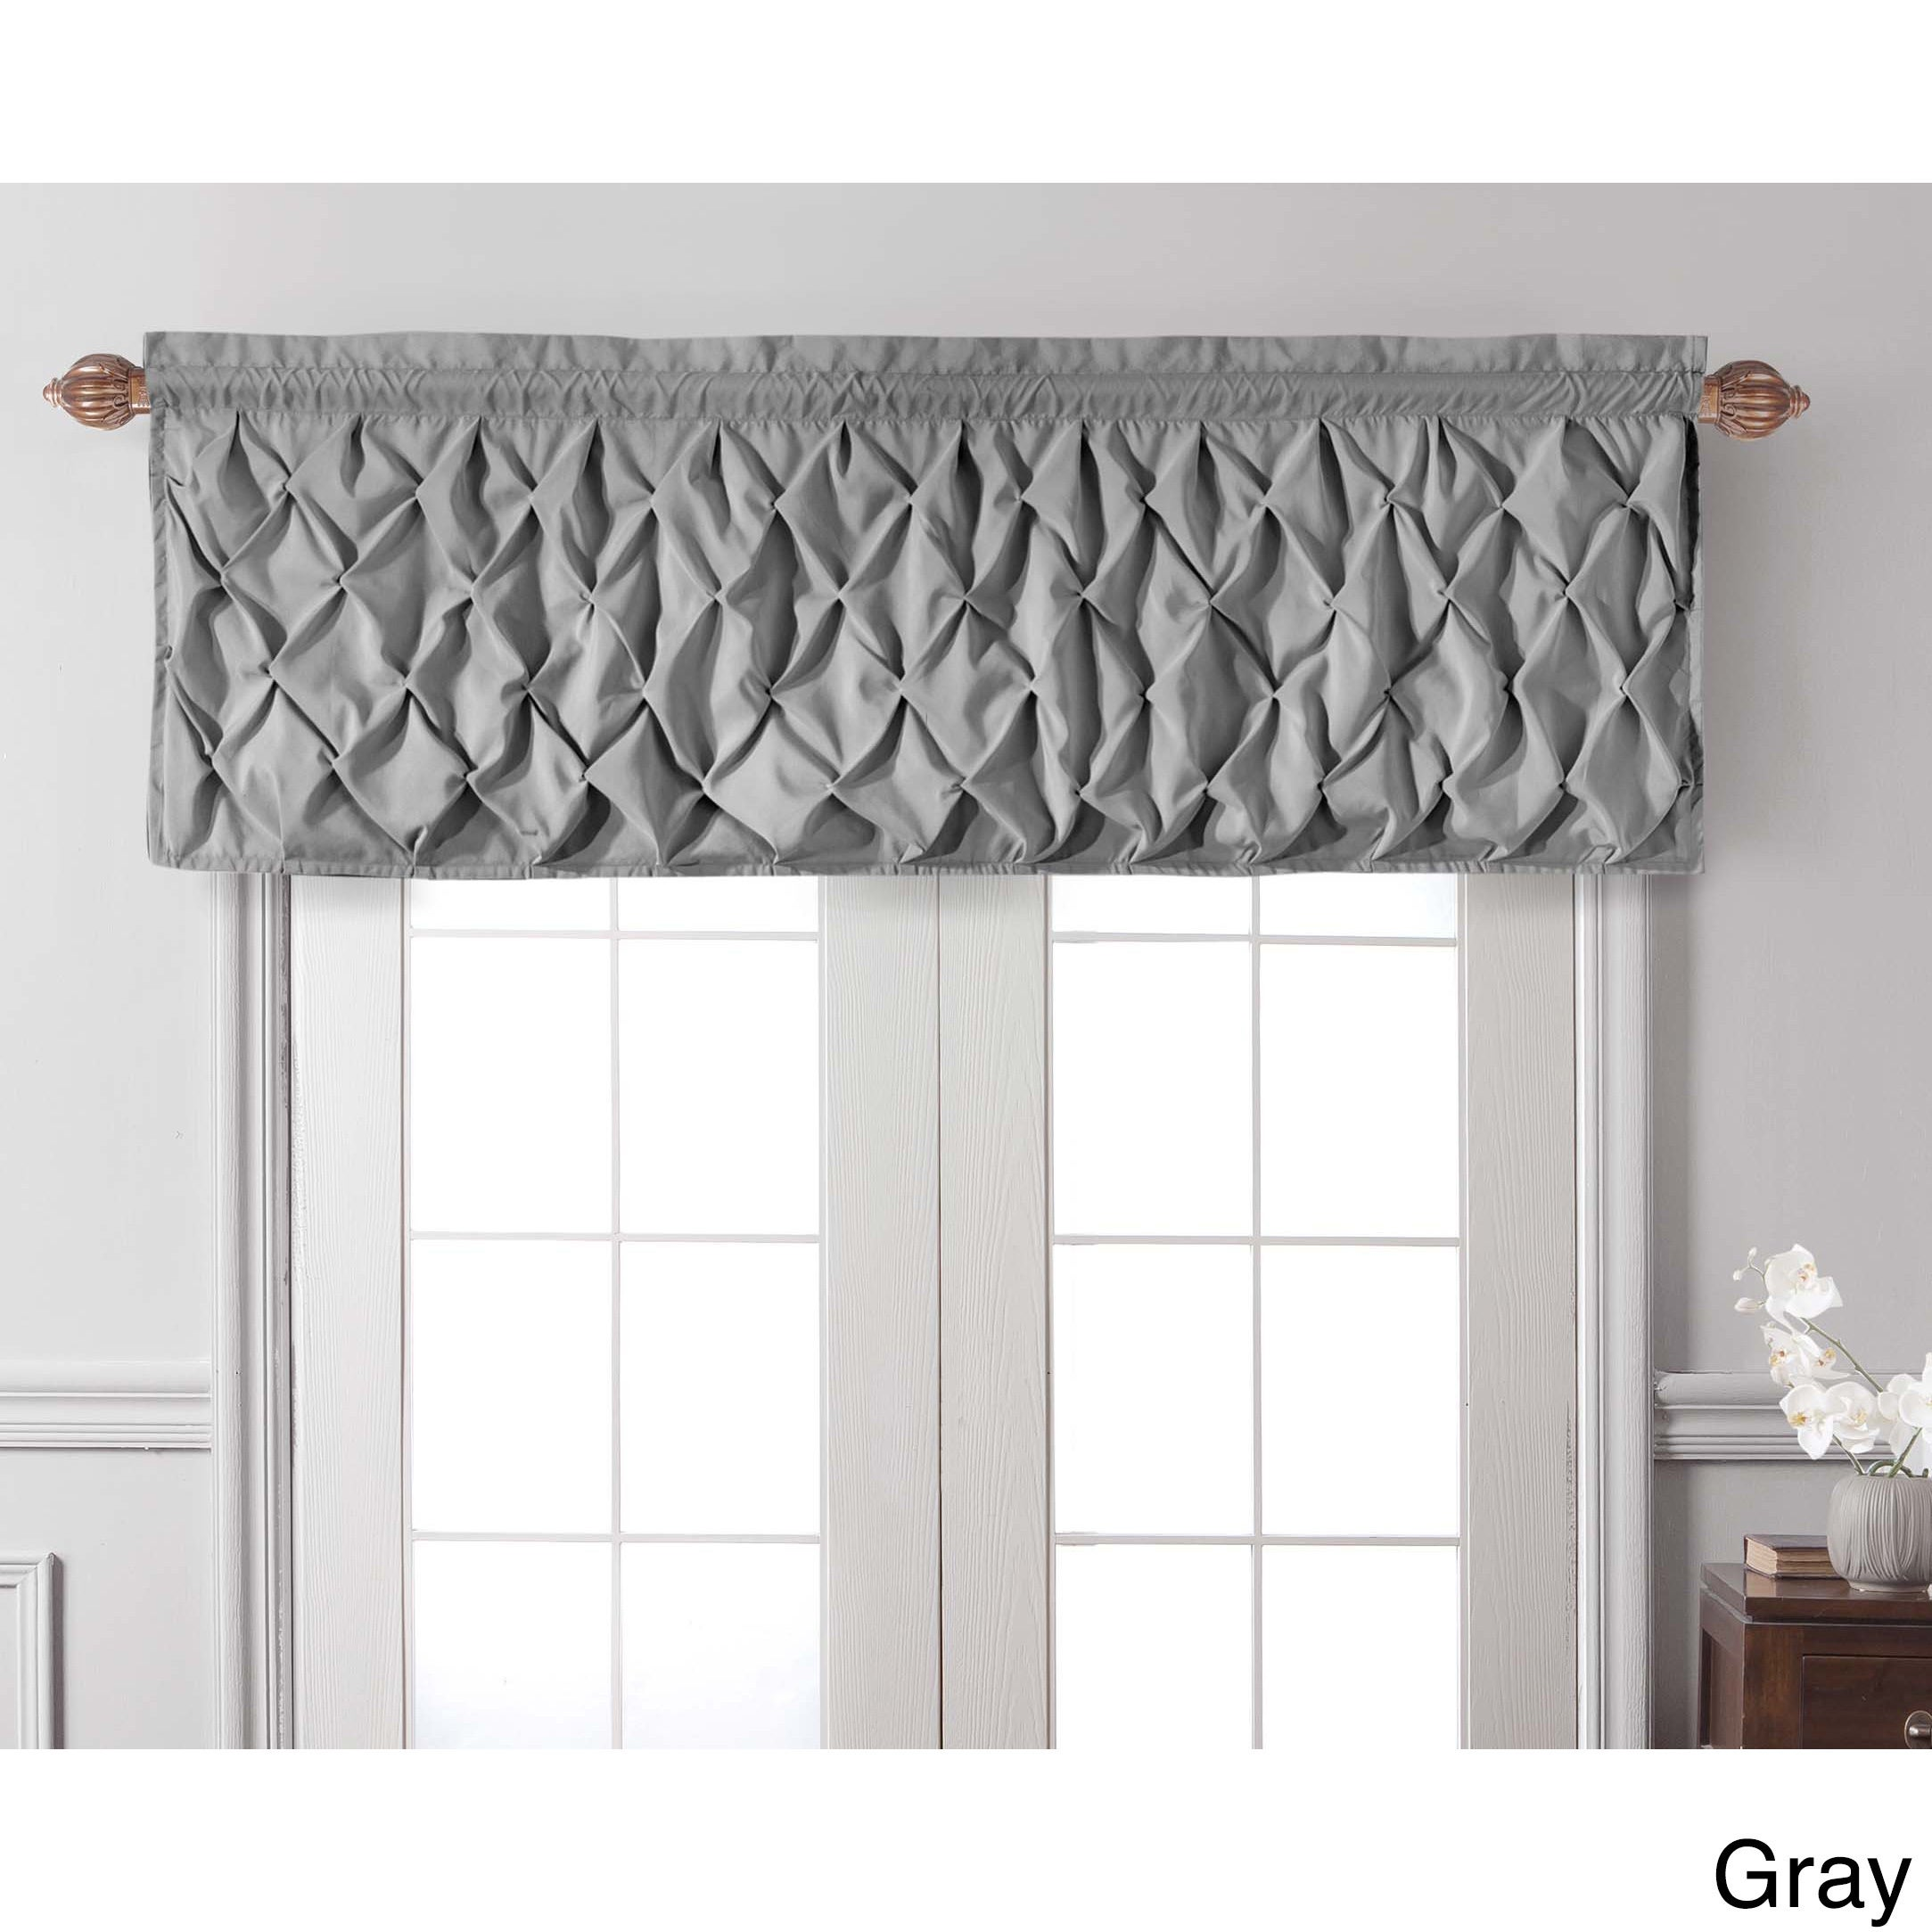 Entrancing Images About Valances Balloon Shades Fabric For Small Bathroom  Windows Acefacadfcbbfd Curtains